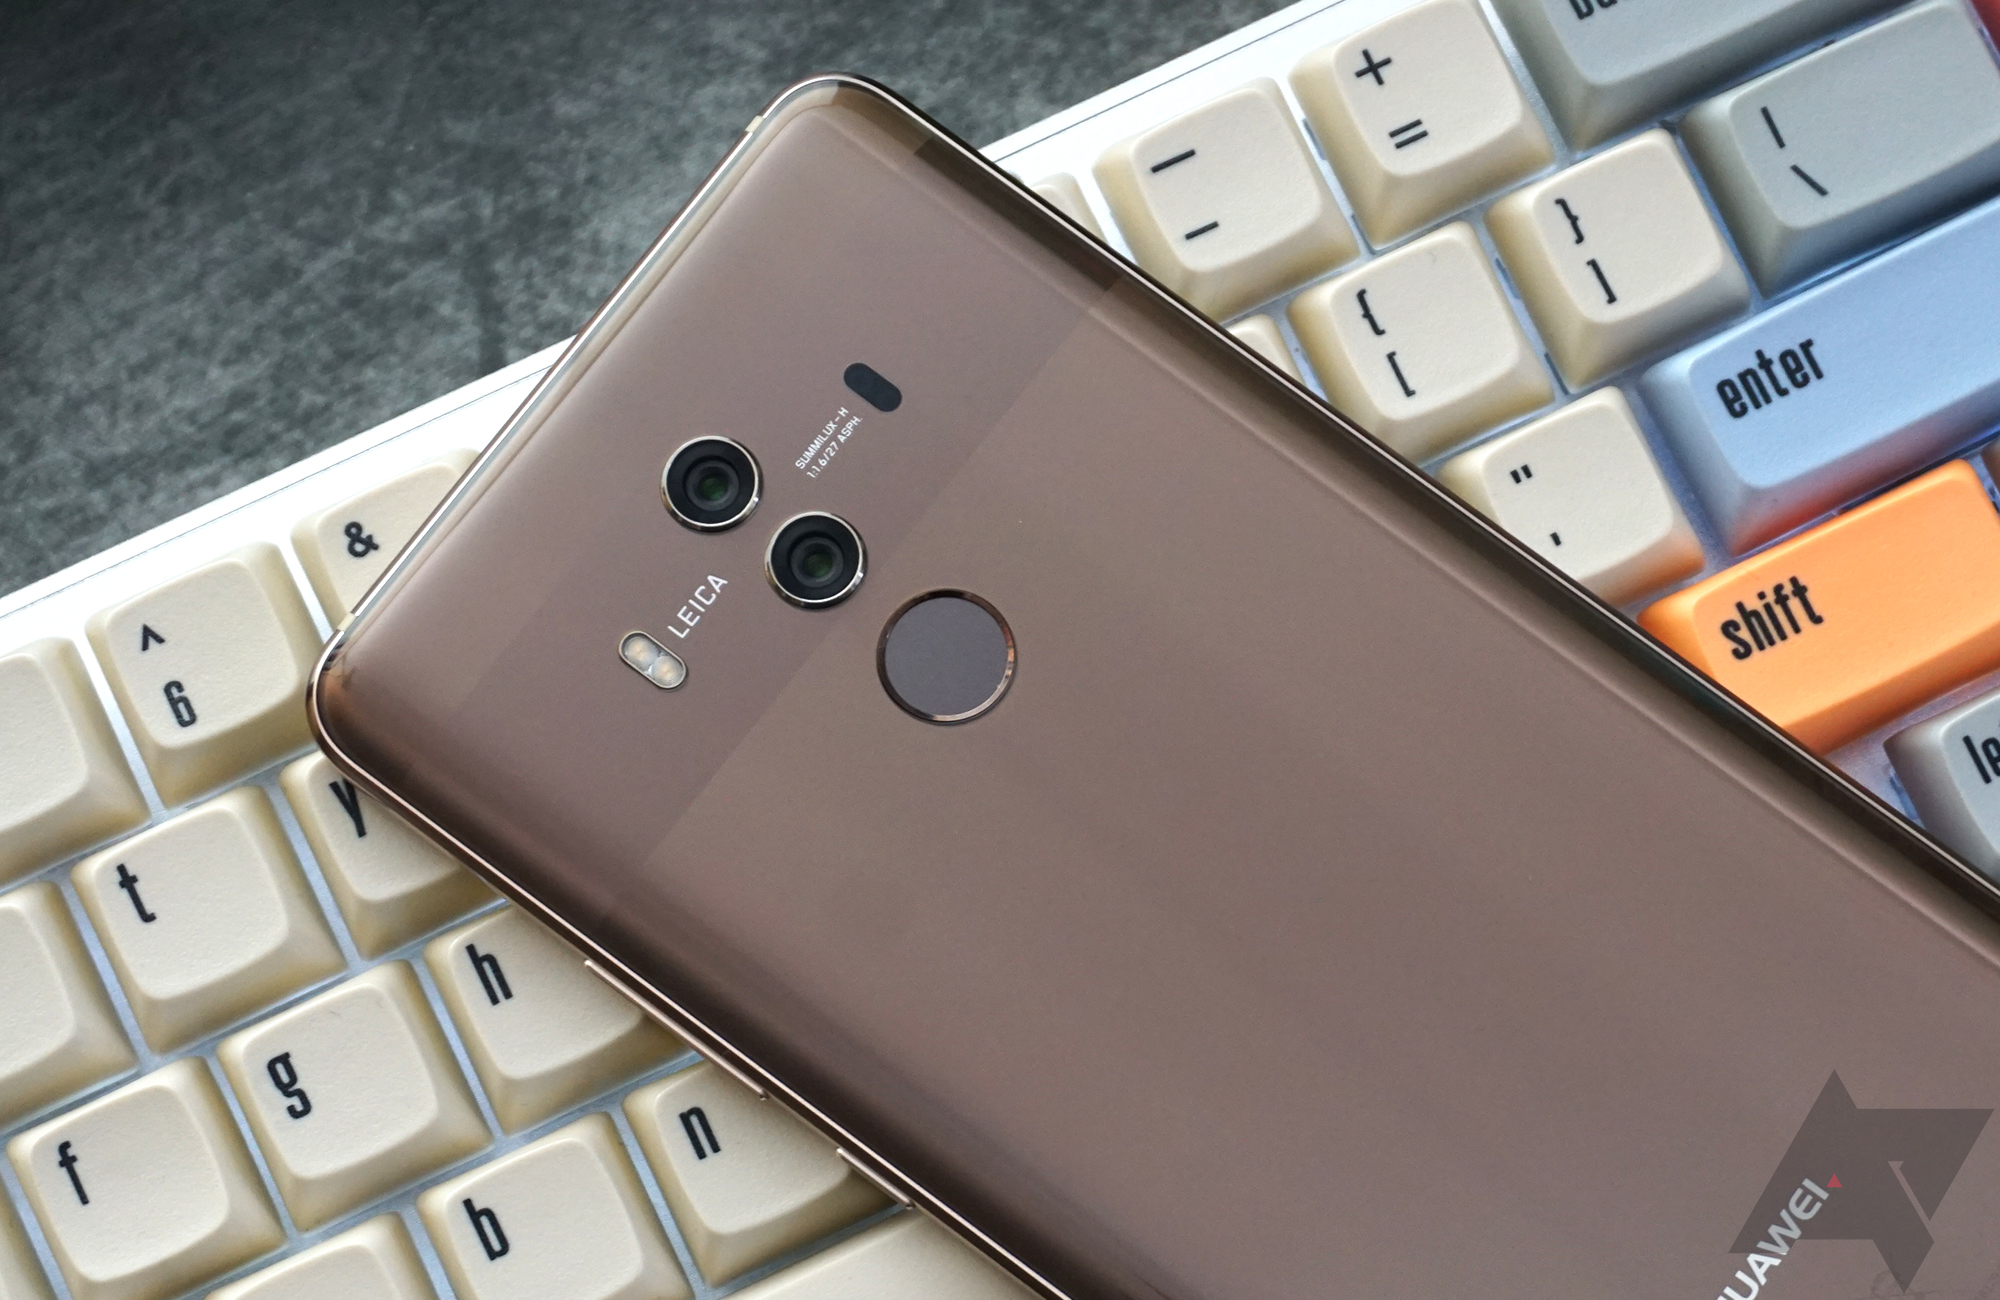 Huawei Mate 10 Pro coming to US for $800 next month, AT&T